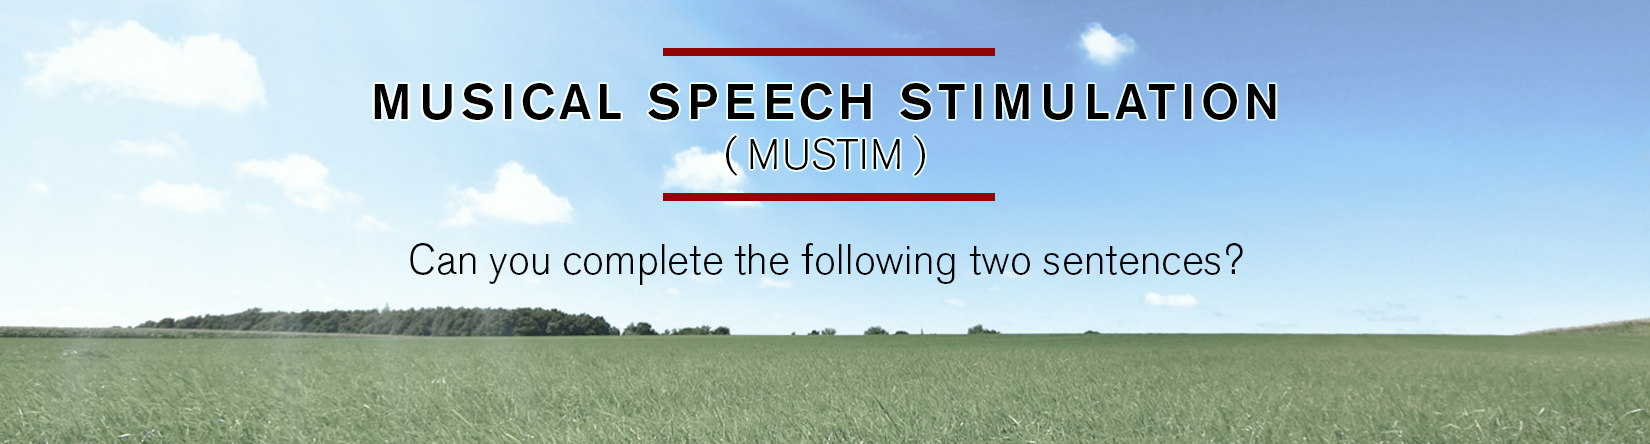 MUS I CA L S P E E C H S T IMU LATION ( M UST I M ) Can you complete the following two sentences?